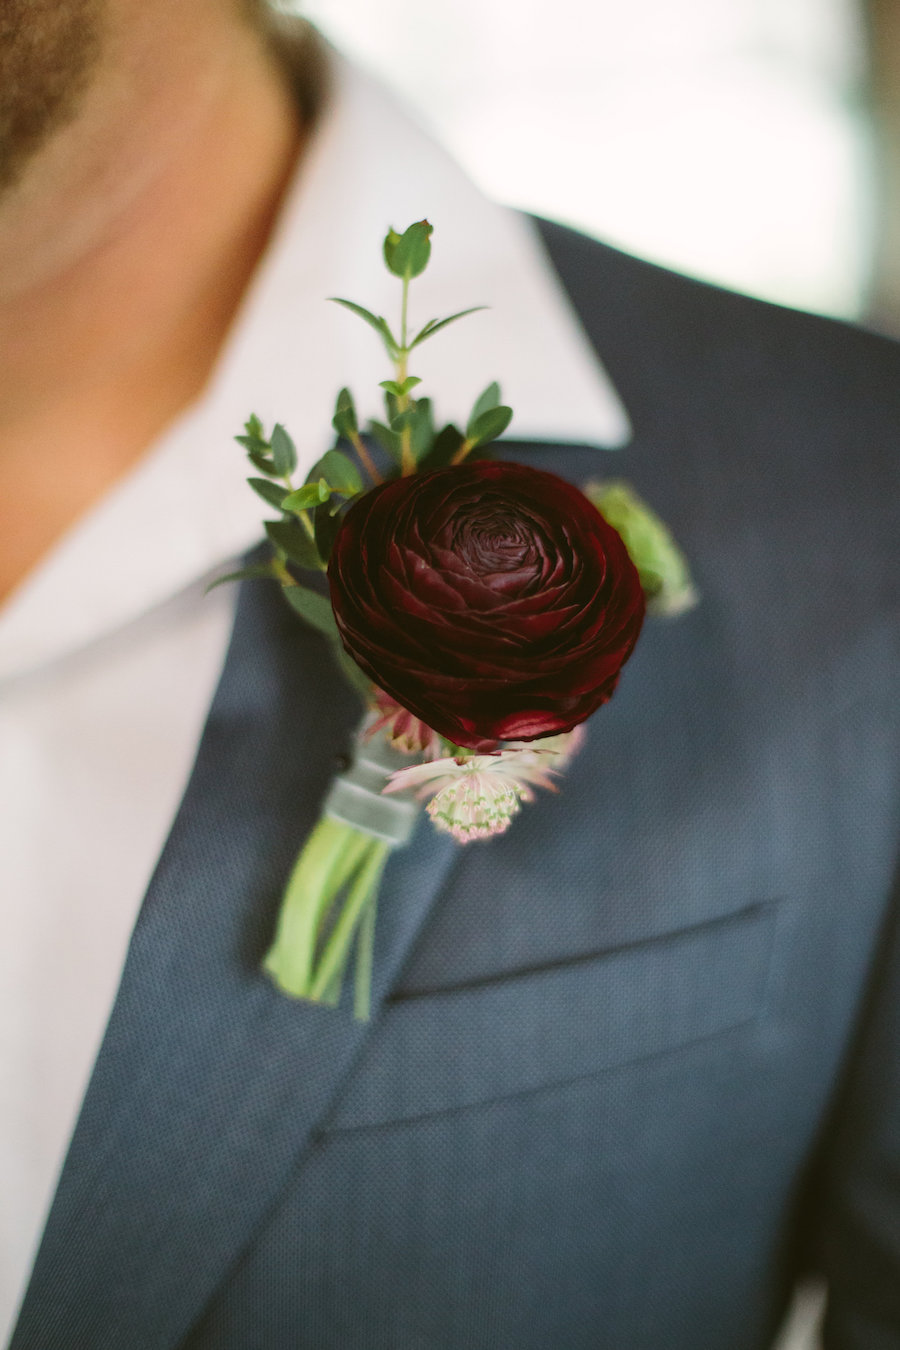 Modern Groom's Wine Colored Rose with Greenery Boutonnière on Grey Suit with White Button Down Shirt | Groom in Grey Suit Boutonnière Portrait